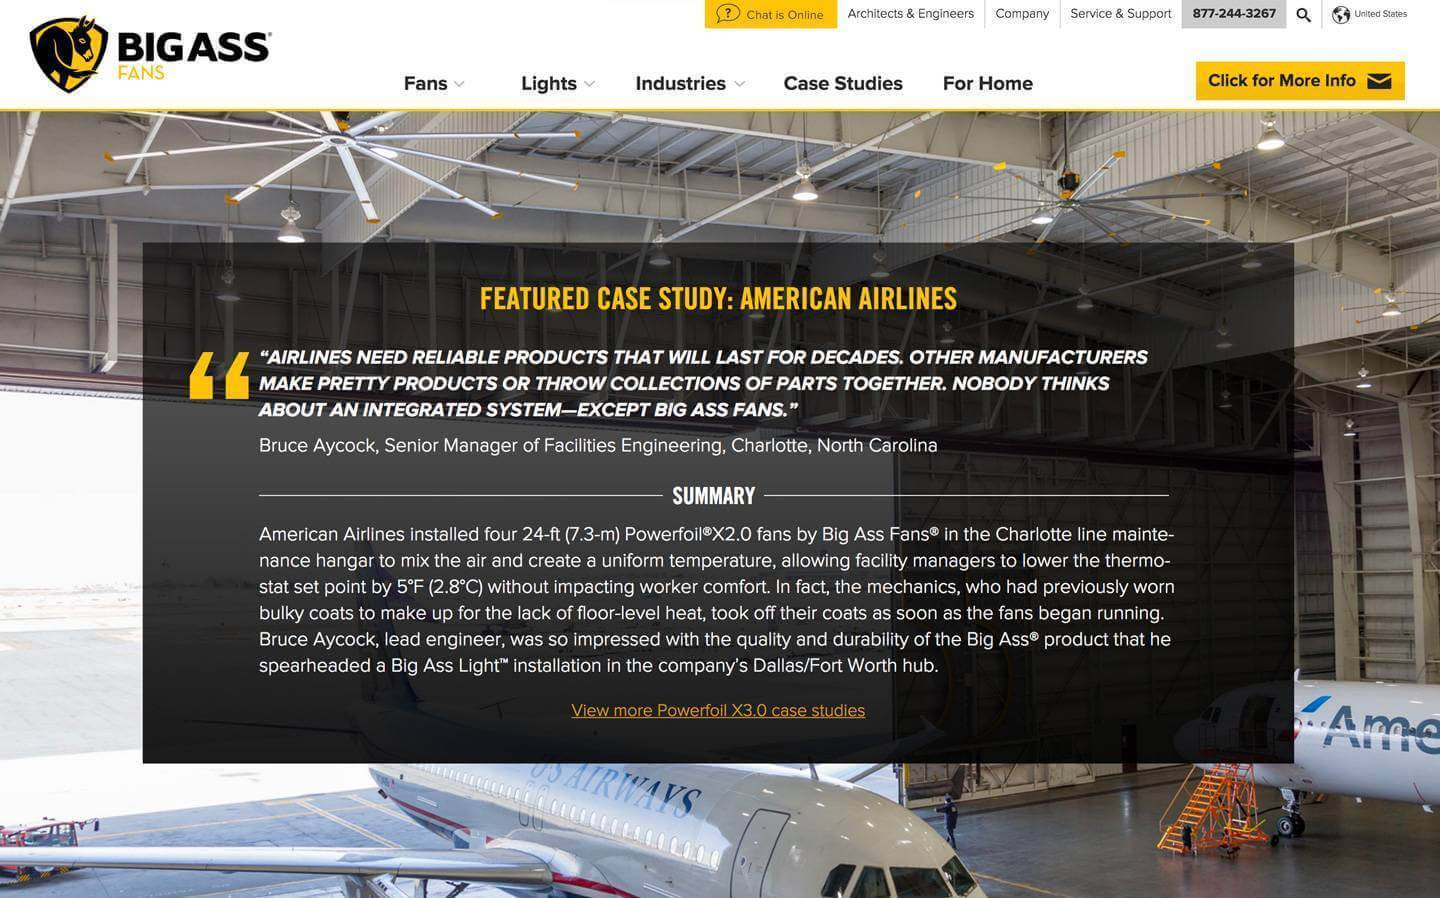 Big ass fans featured case study page